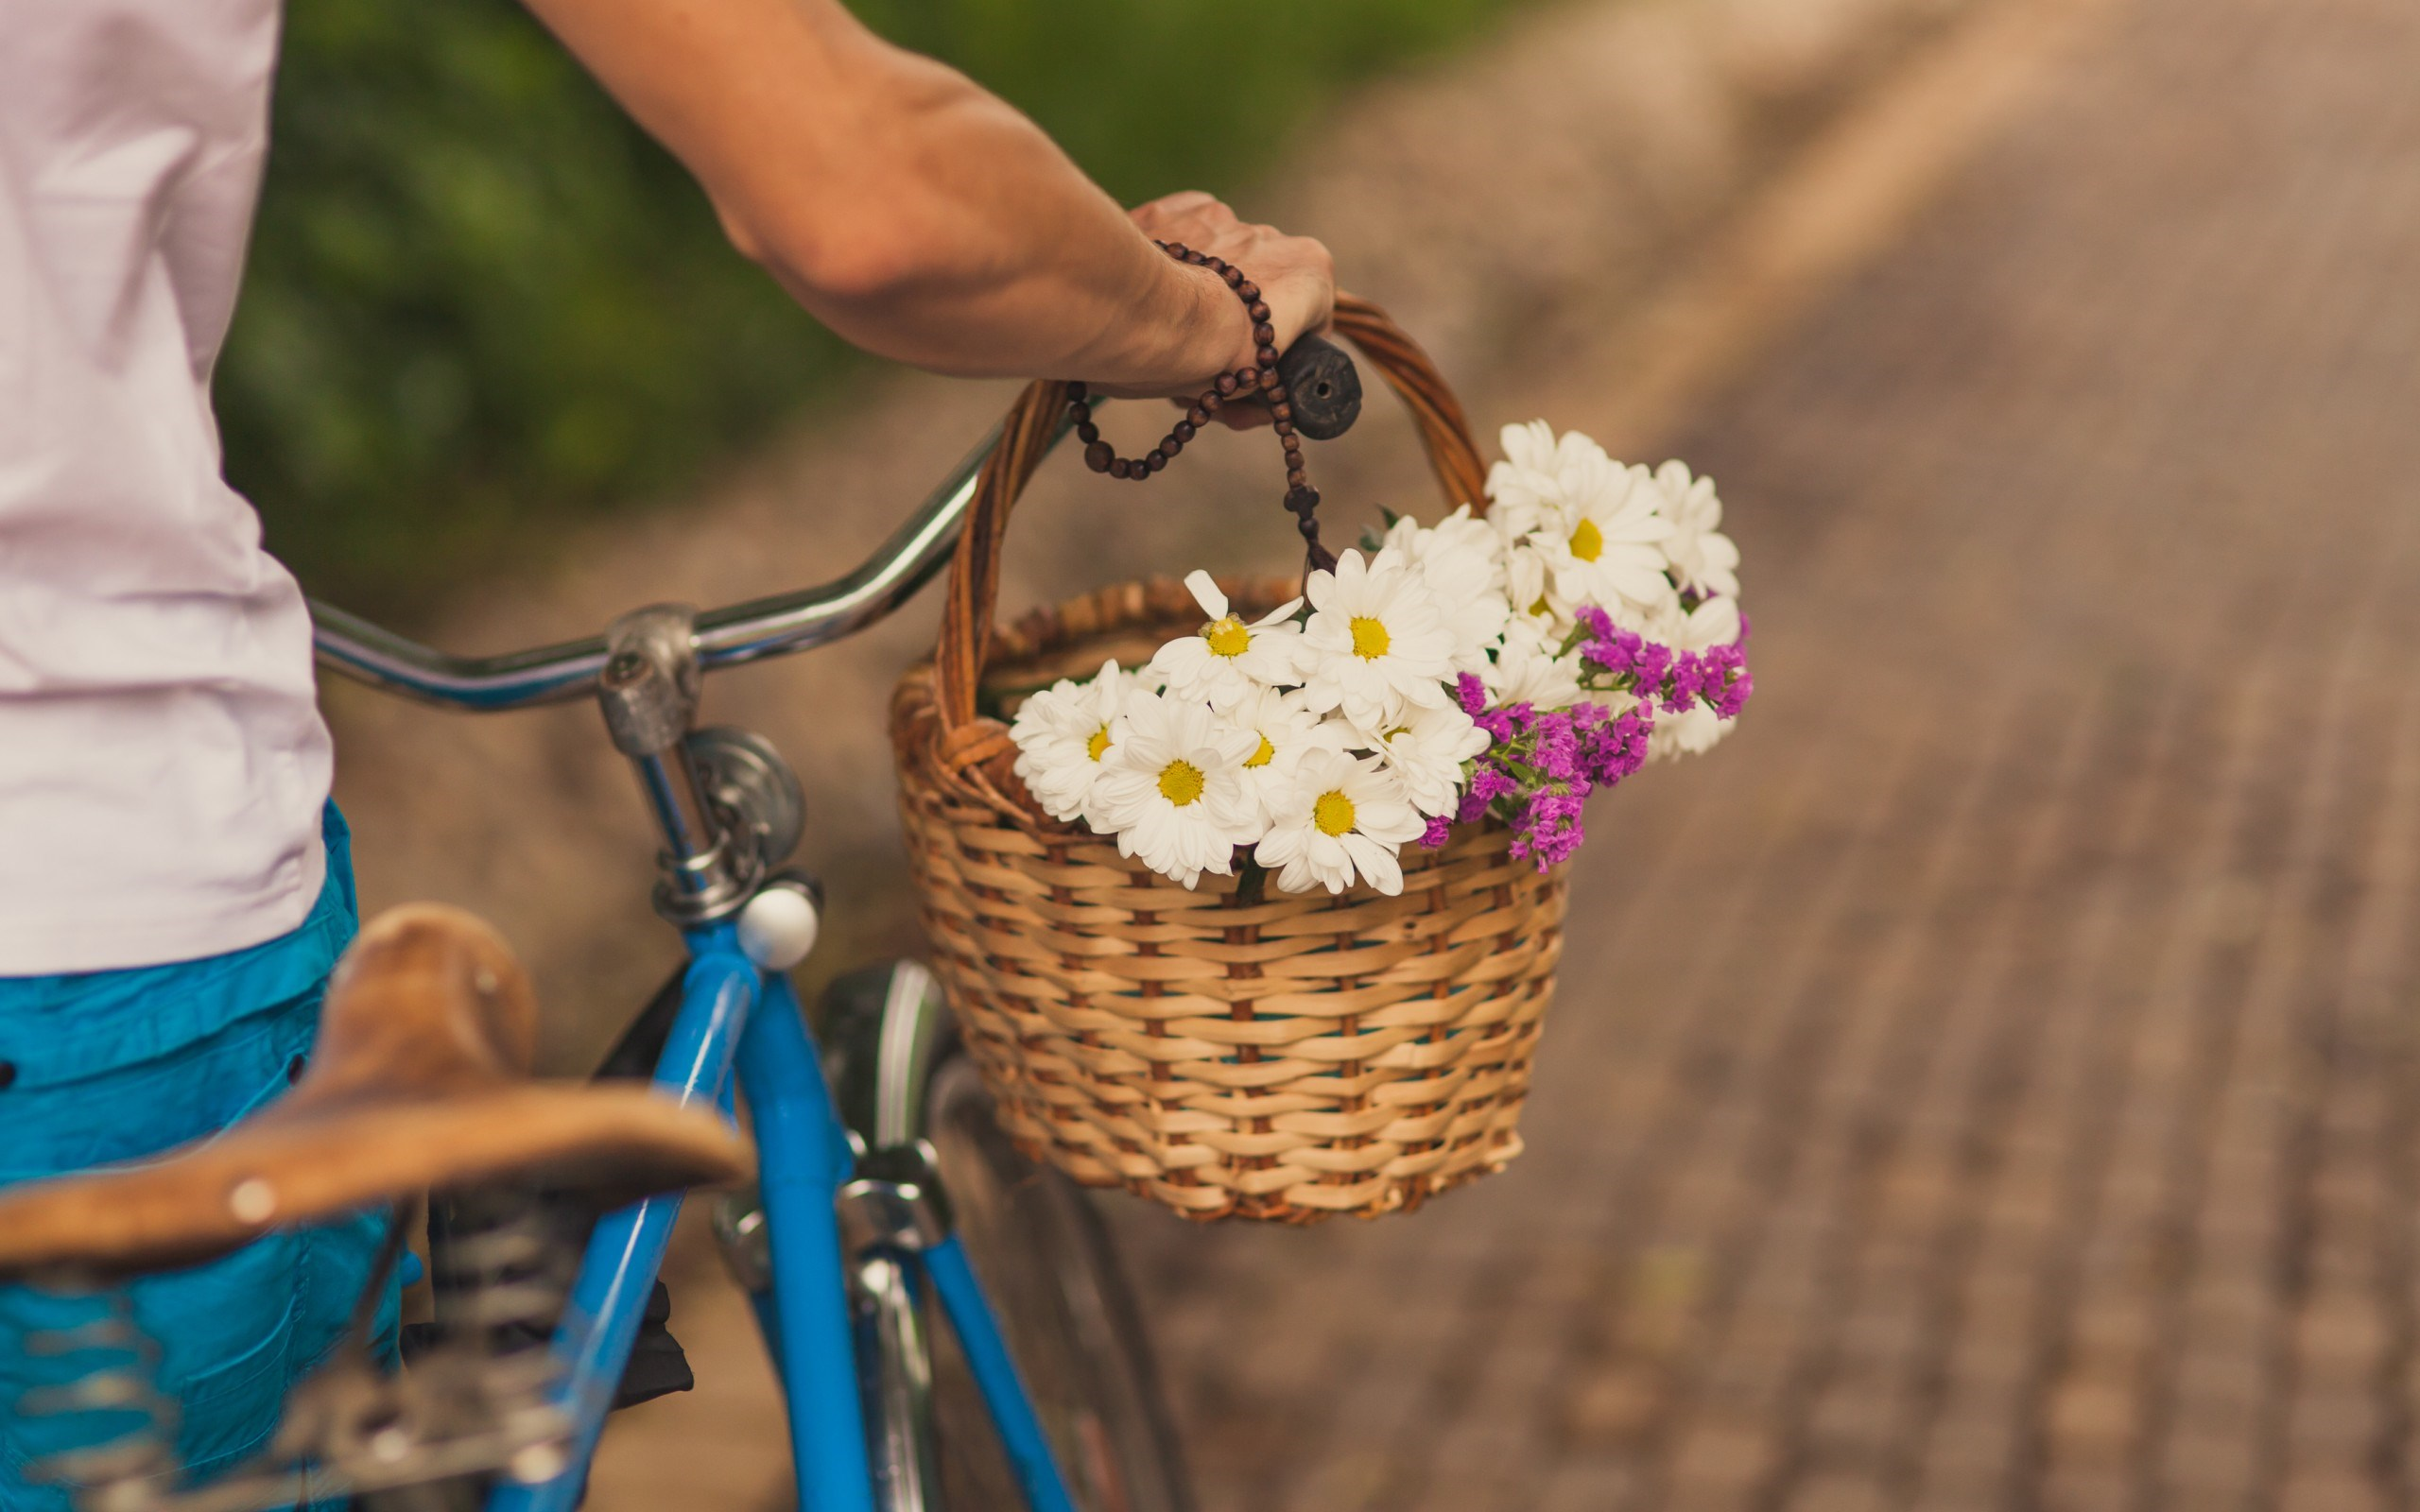 bicycles with flowers wallpaper - photo #30